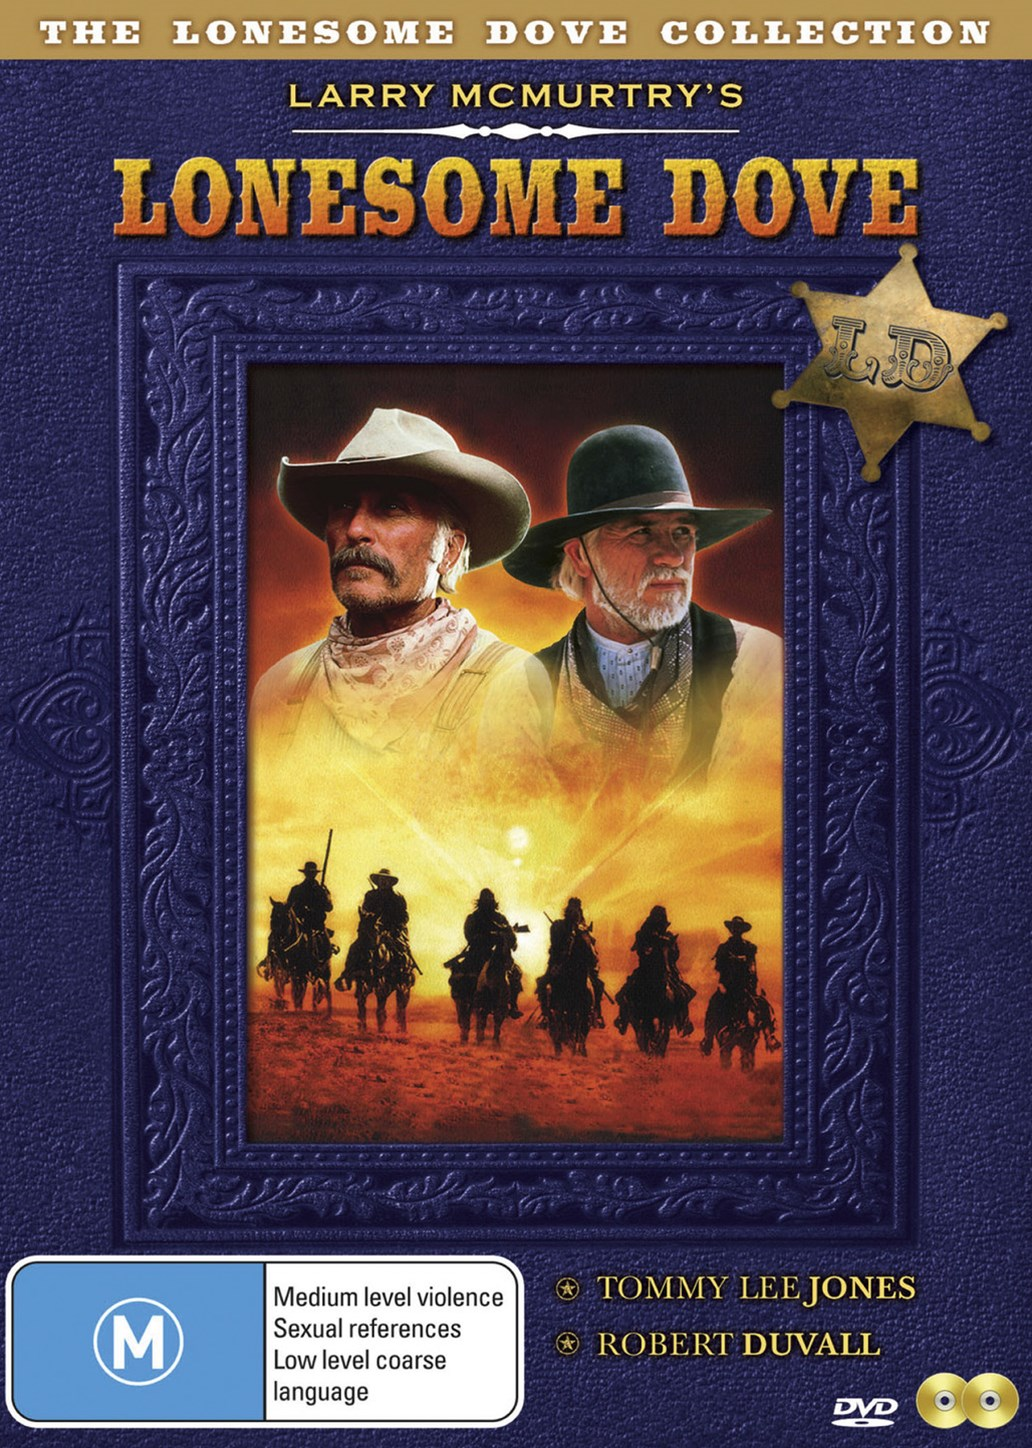 Lonesome Dove (The Lonesome Dove Collection)